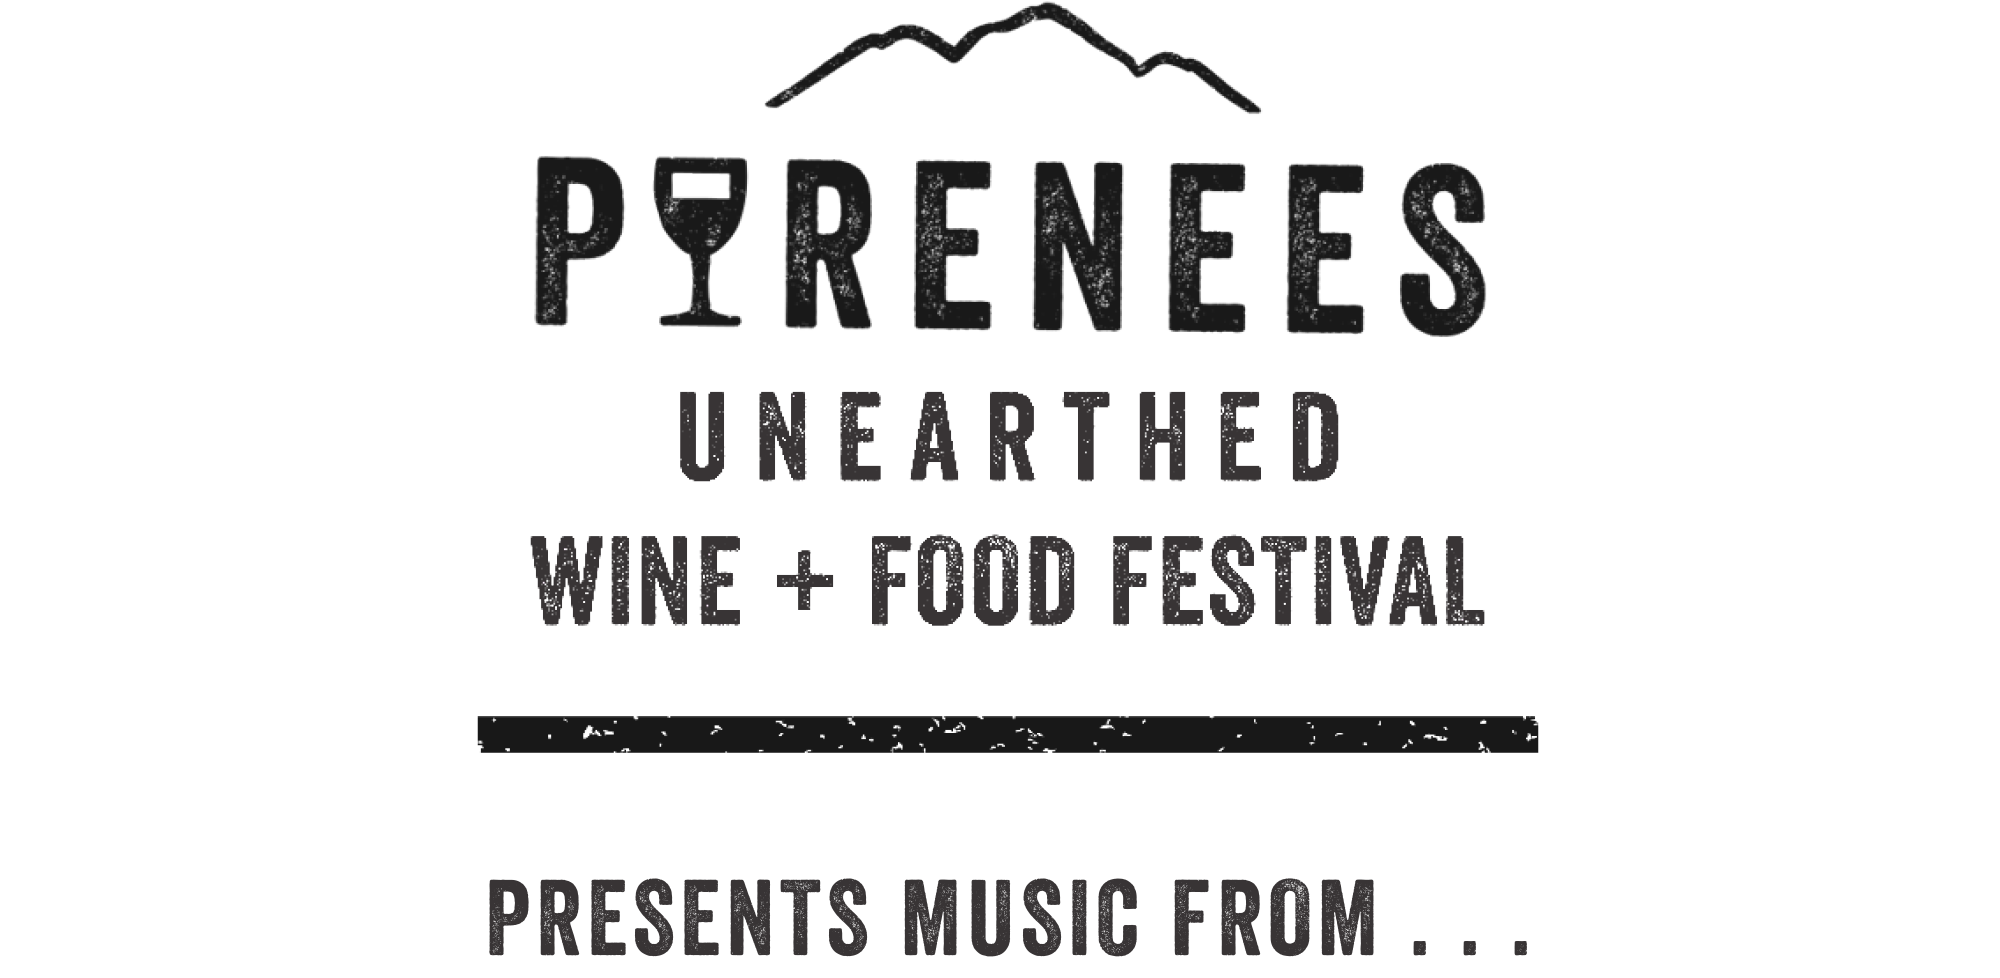 The Pyrenees Unearthed Festival Present Music from . . .